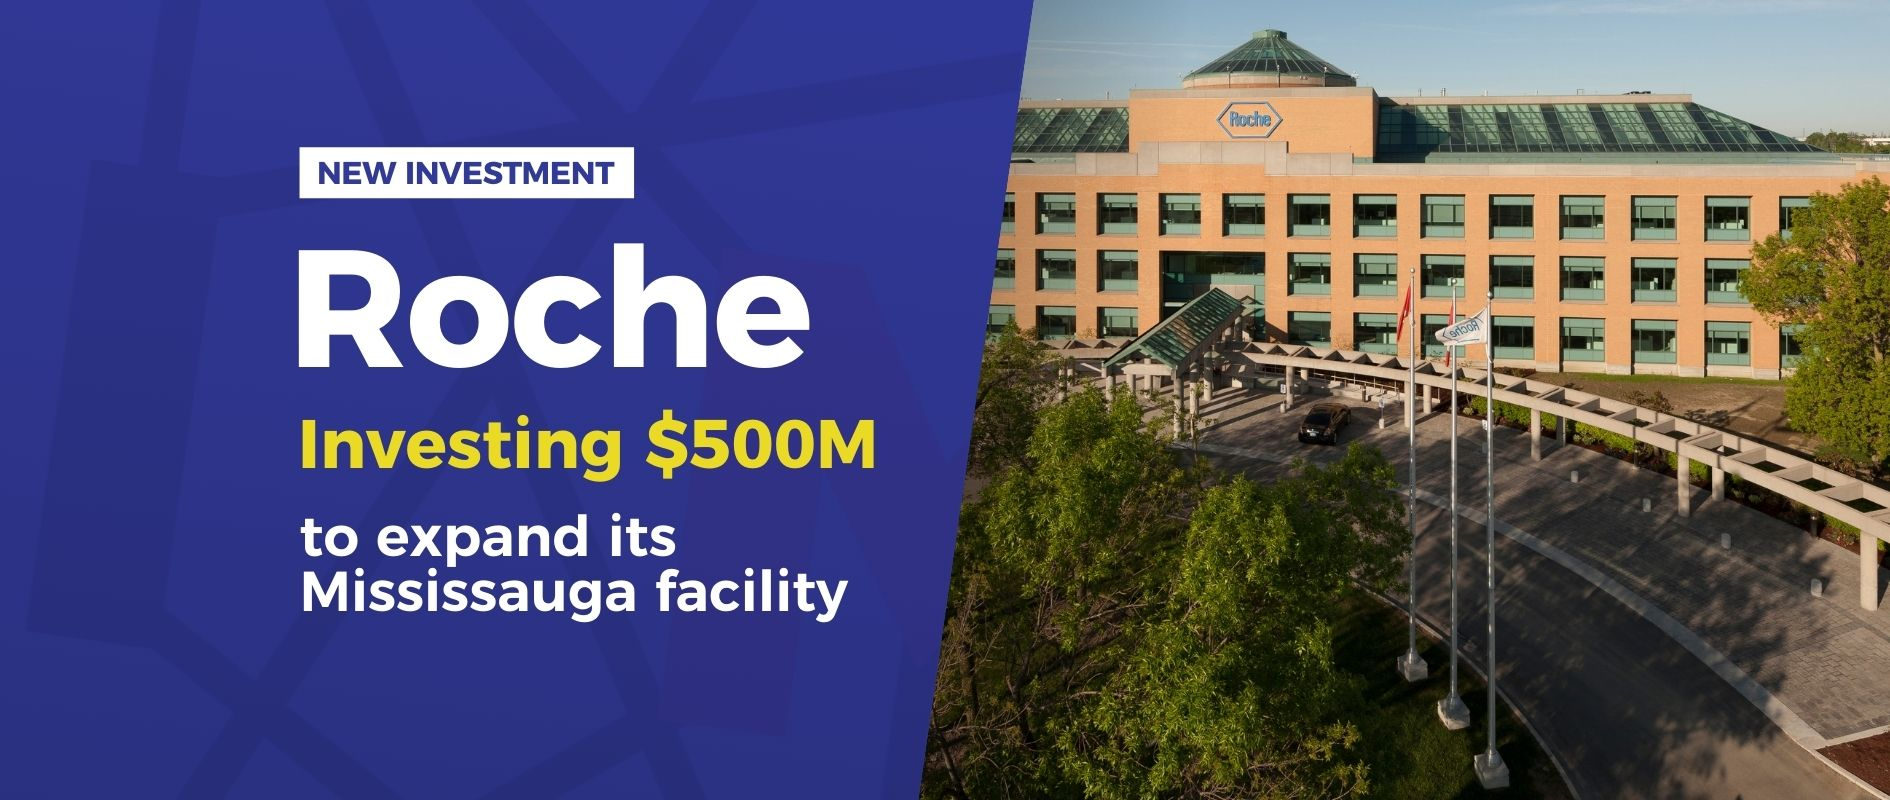 Roche Canada invests $500 million to expand its Mississauga facility